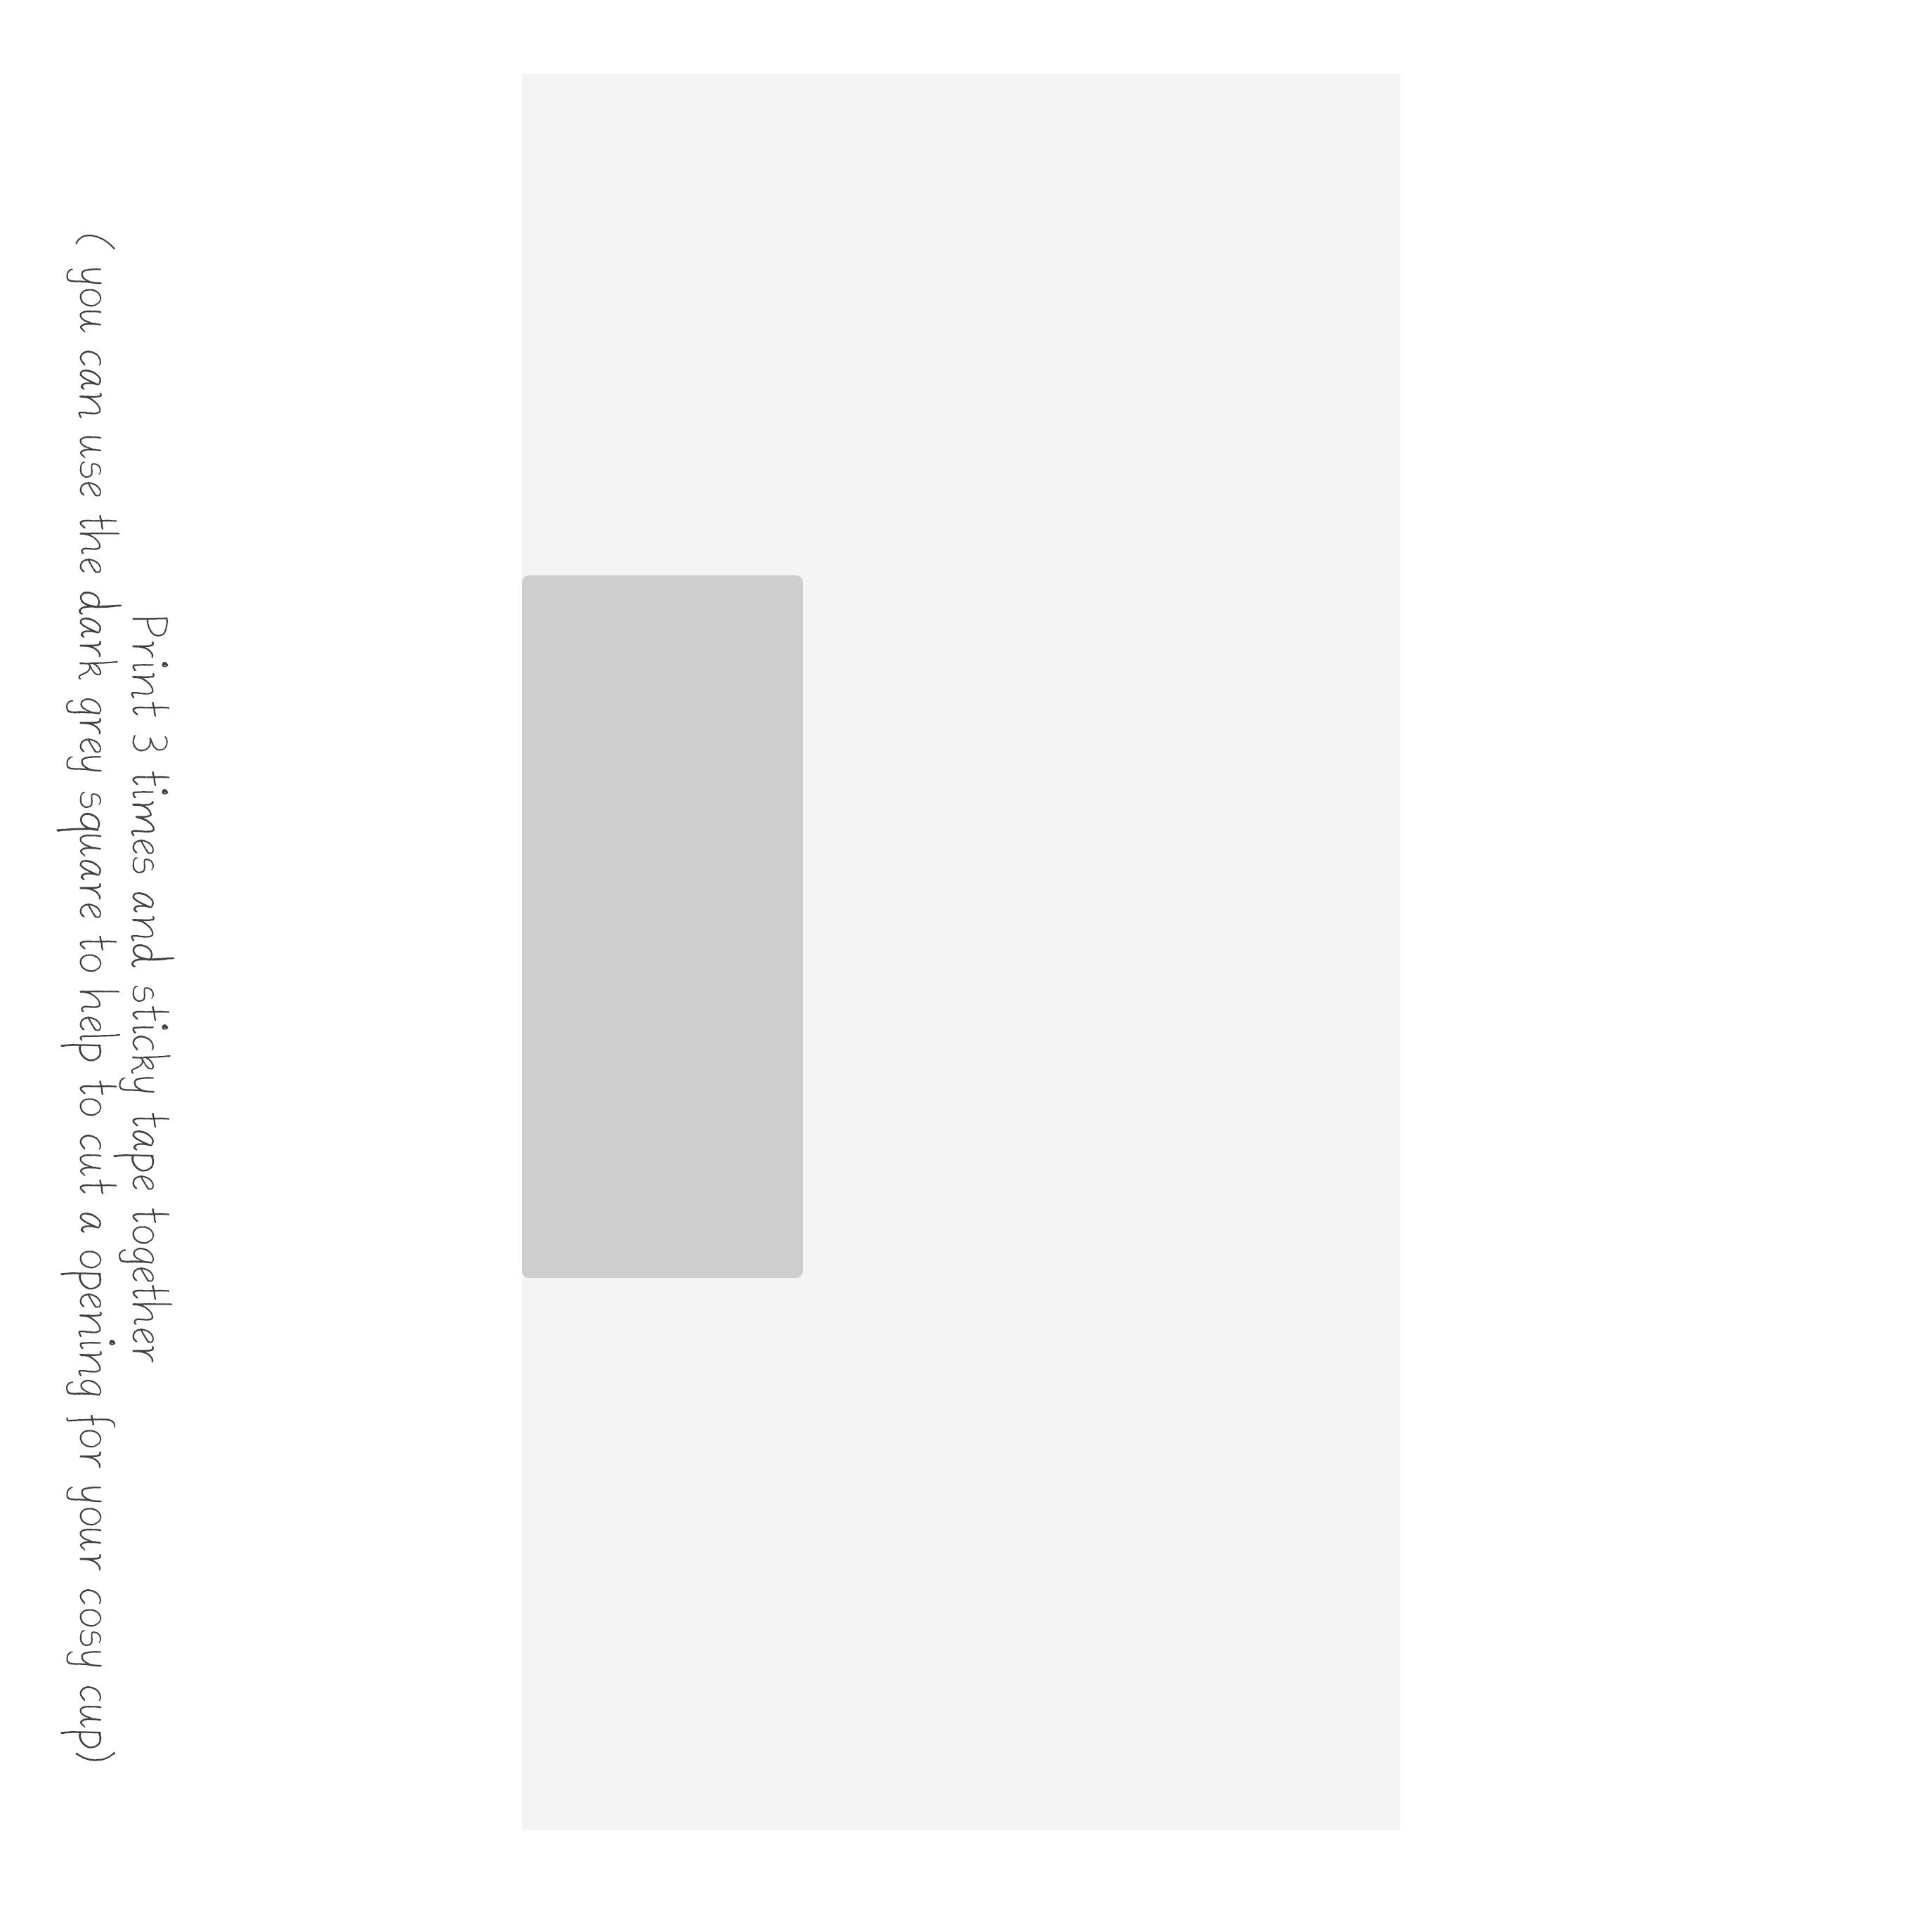 rectangle-template.jpg (2750×2750)